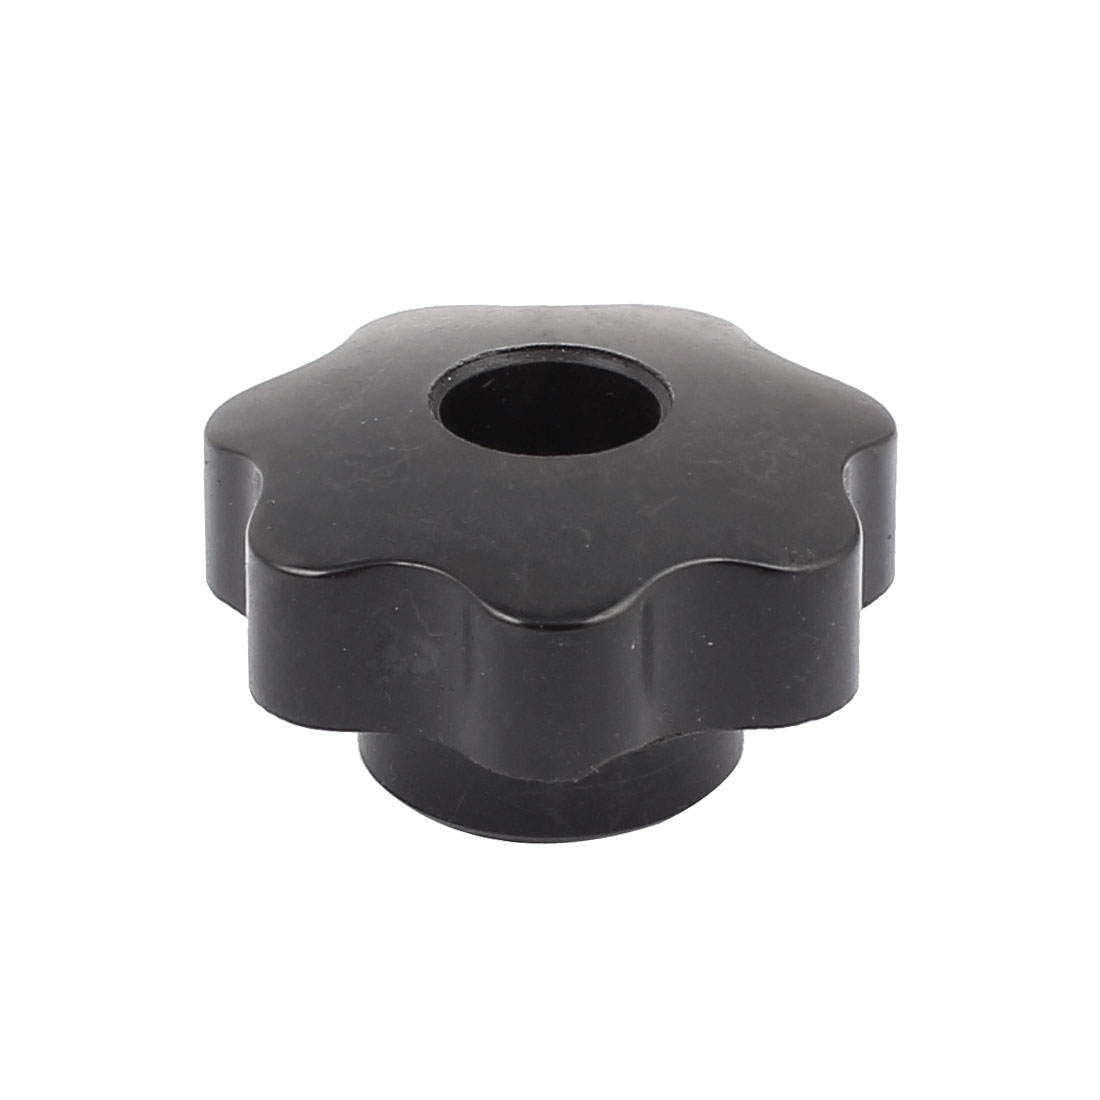 7mm Dia Female Thread Grip Replacement Head Clamping Nuts Star Knob